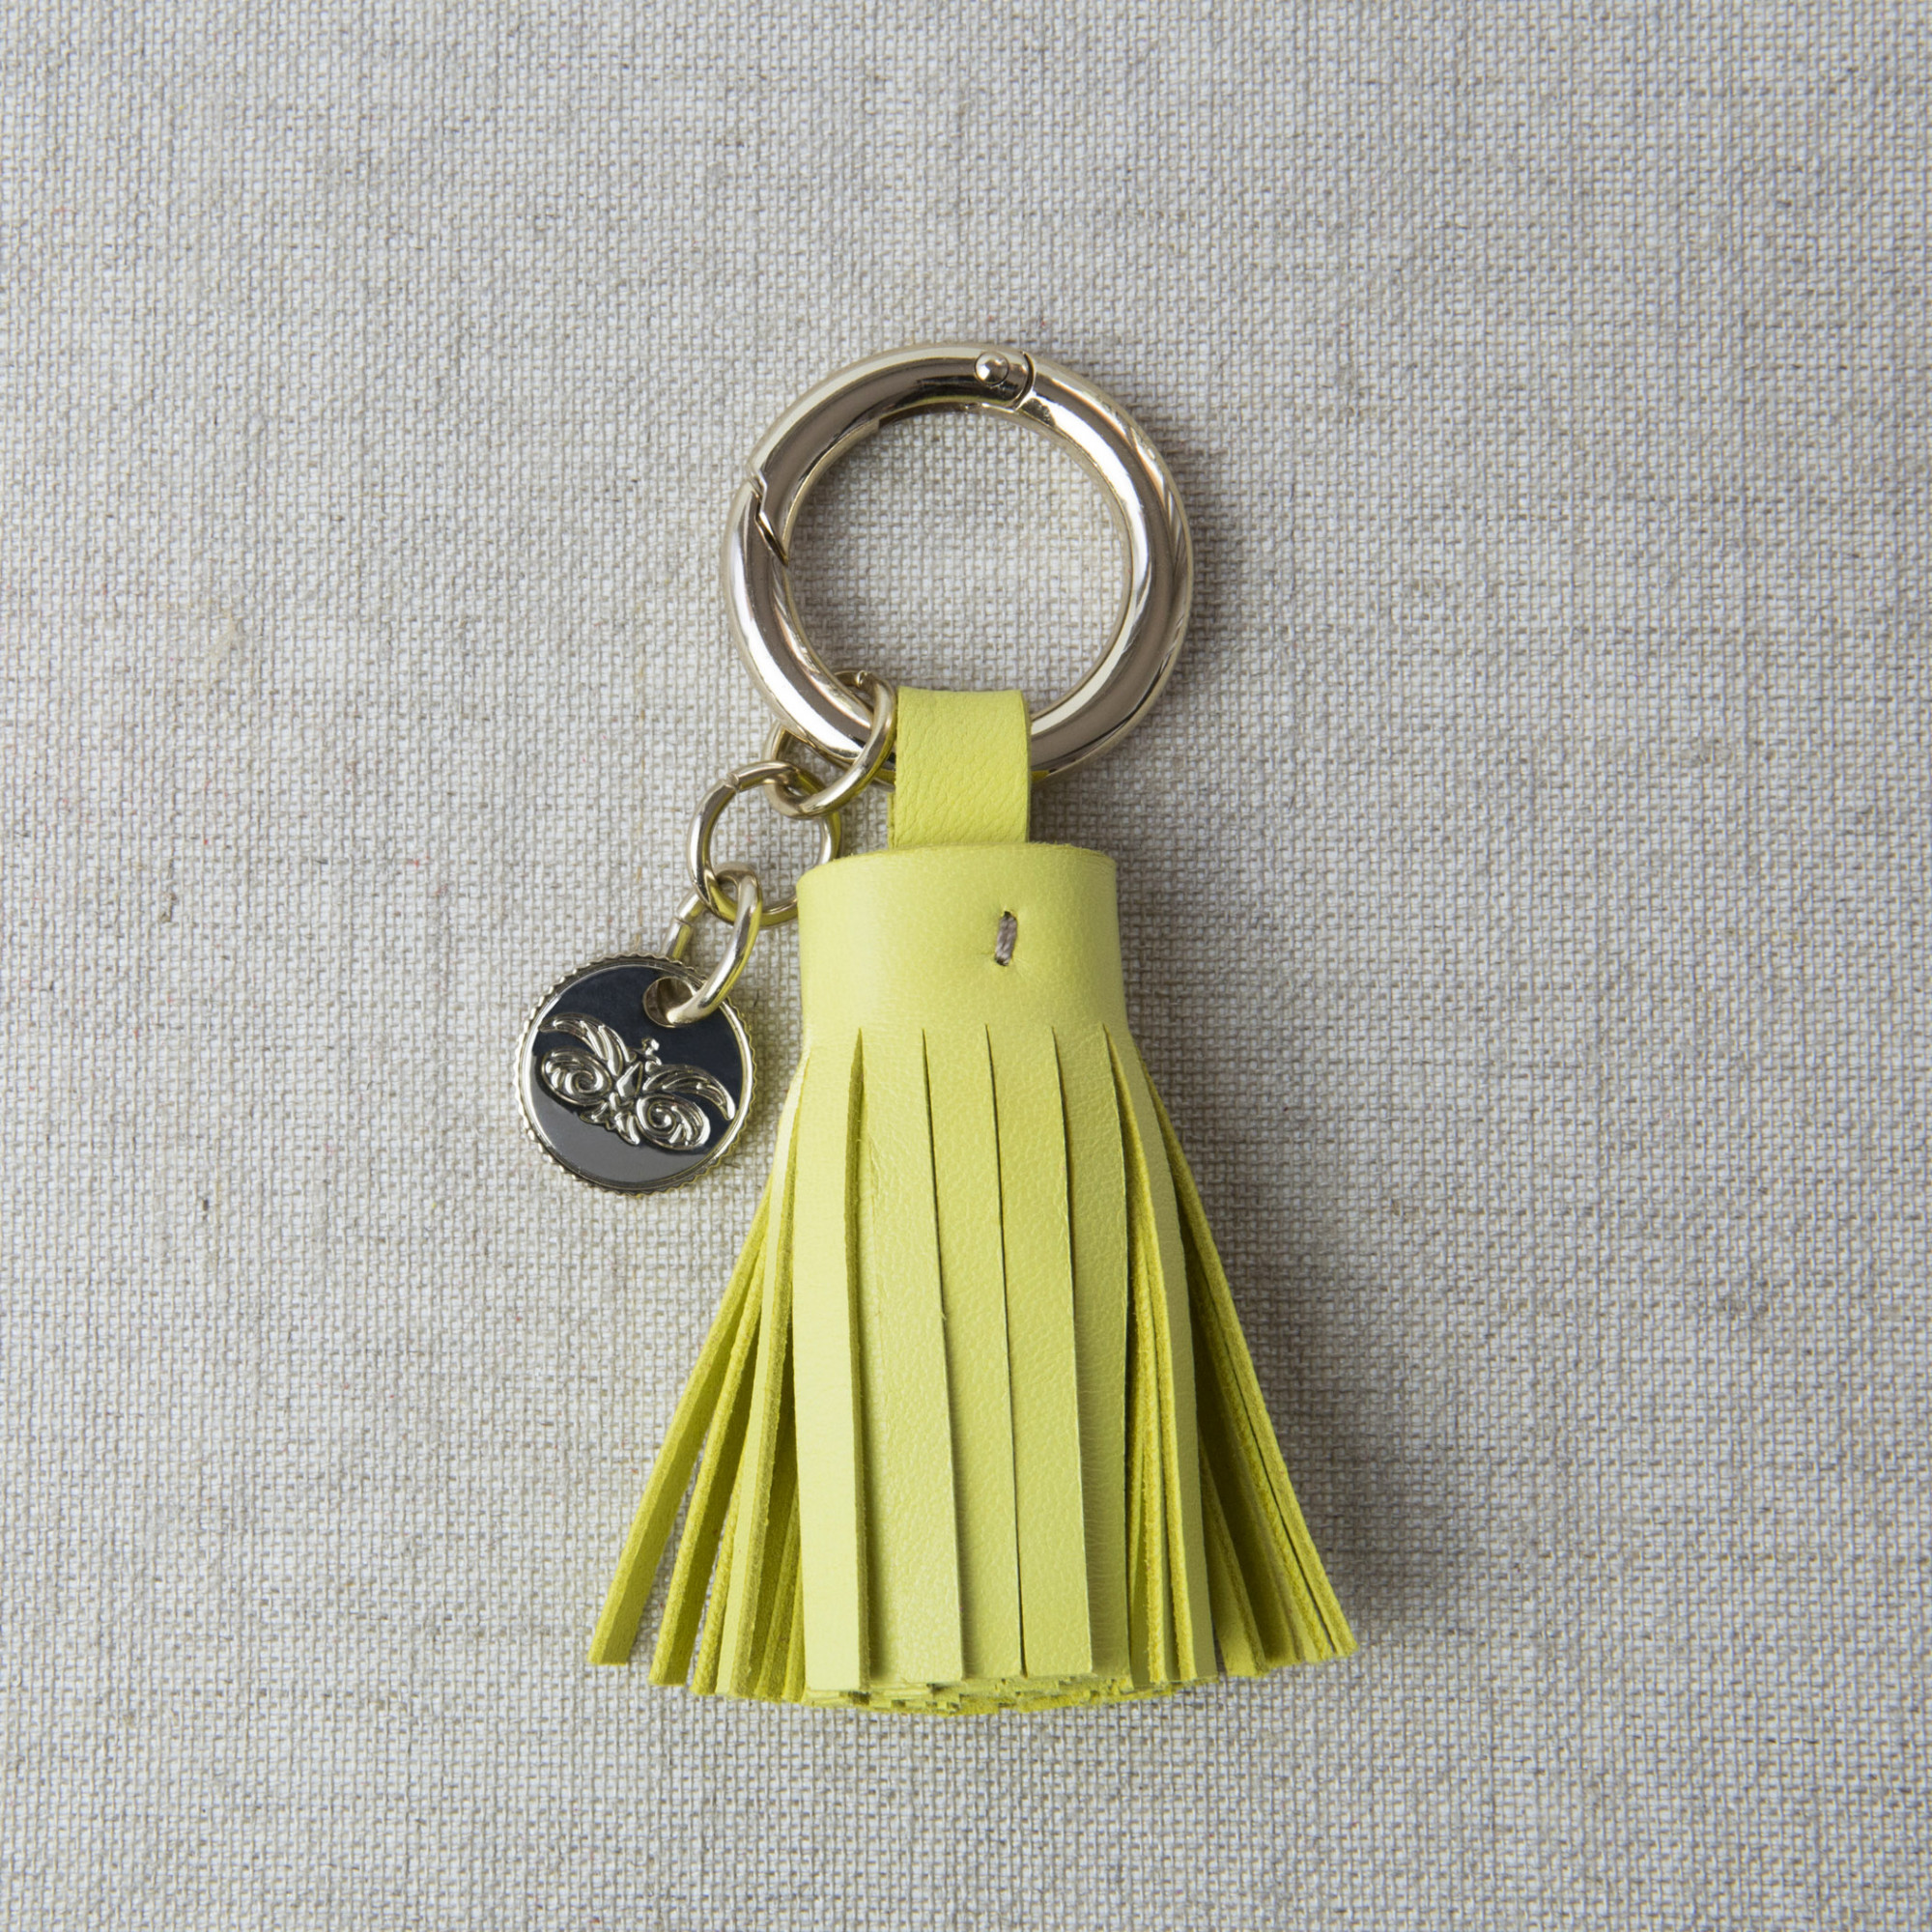 Key holder and bag charms TASSEL in lambskin, anis color and gold - on linen